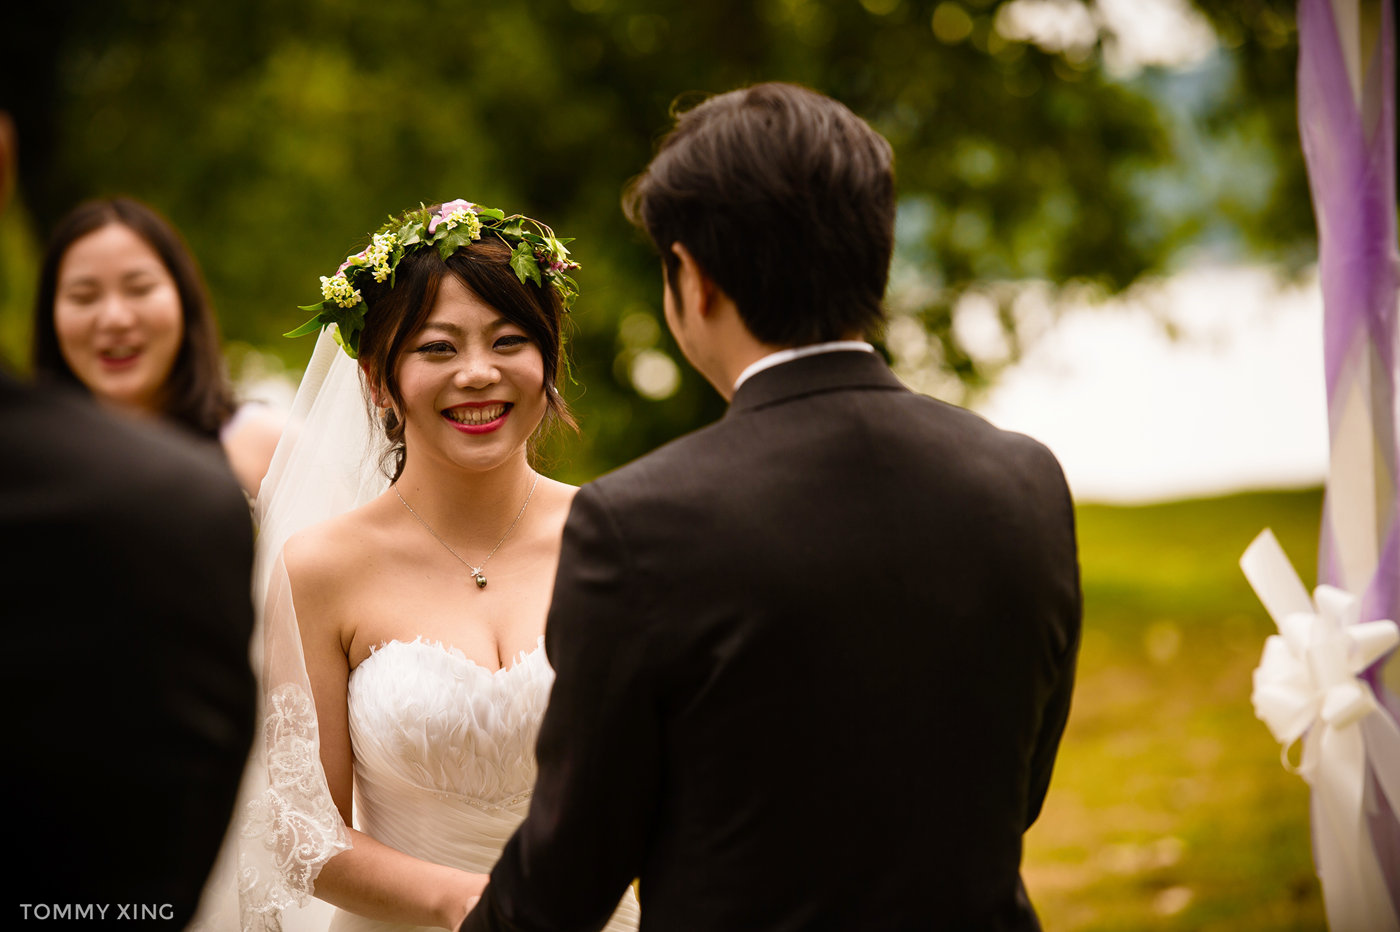 Seattle Wedding and pre wedding Los Angeles Tommy Xing Photography 西雅图洛杉矶旧金山婚礼婚纱照摄影师 096.jpg